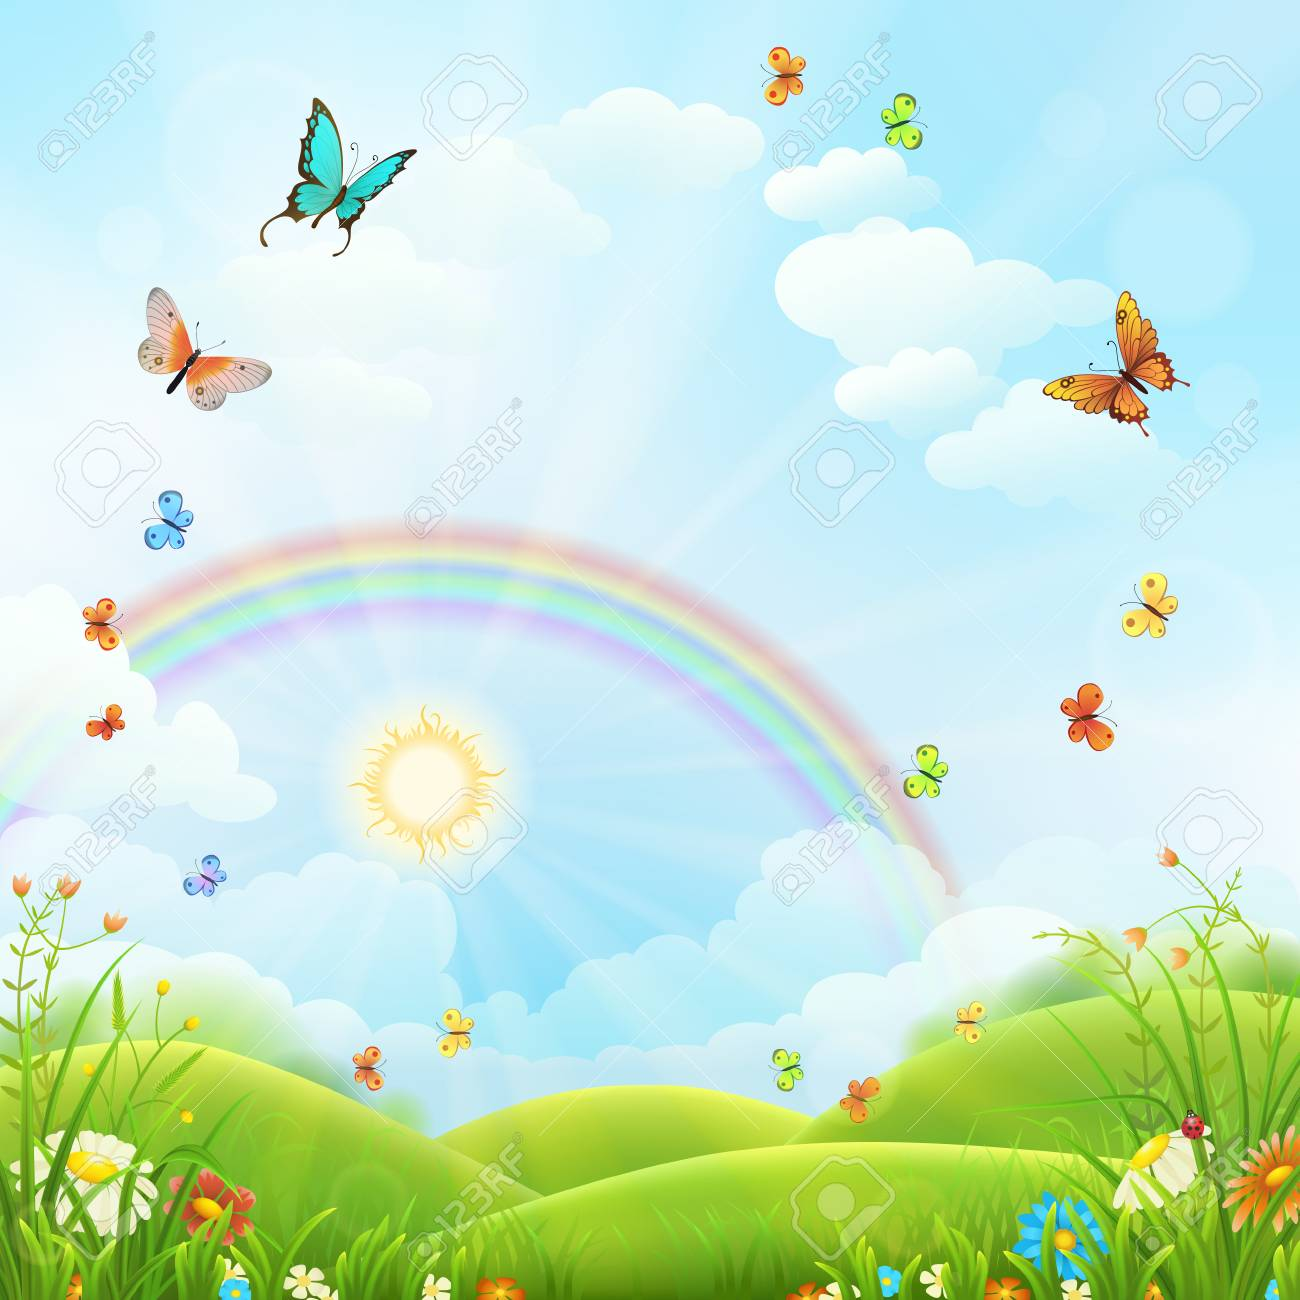 Nature background with green grass, flowers and rainbow.